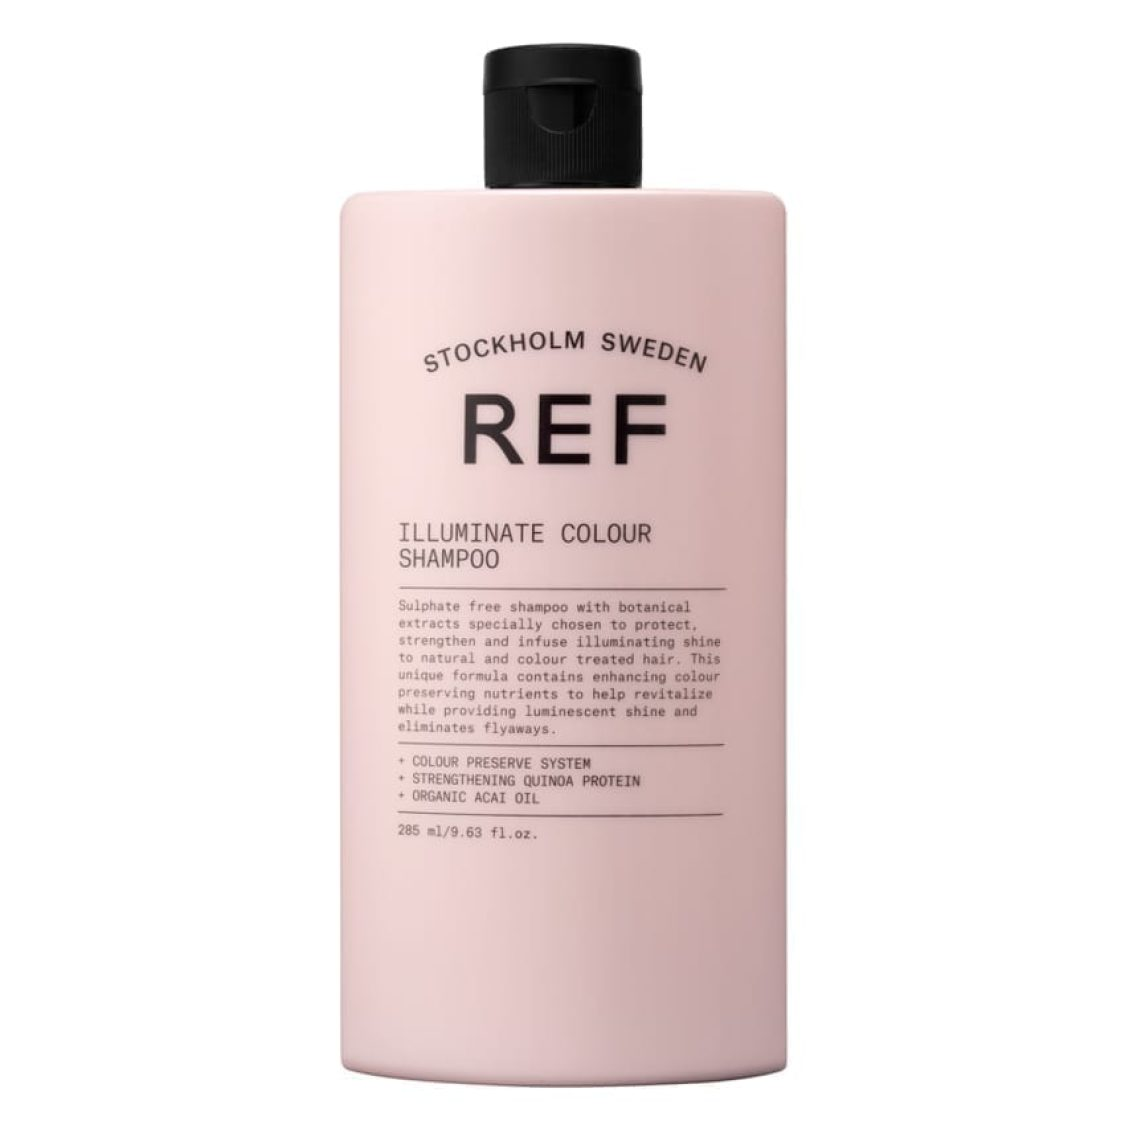 REF - Illuminate Colour Shampoo 285ml